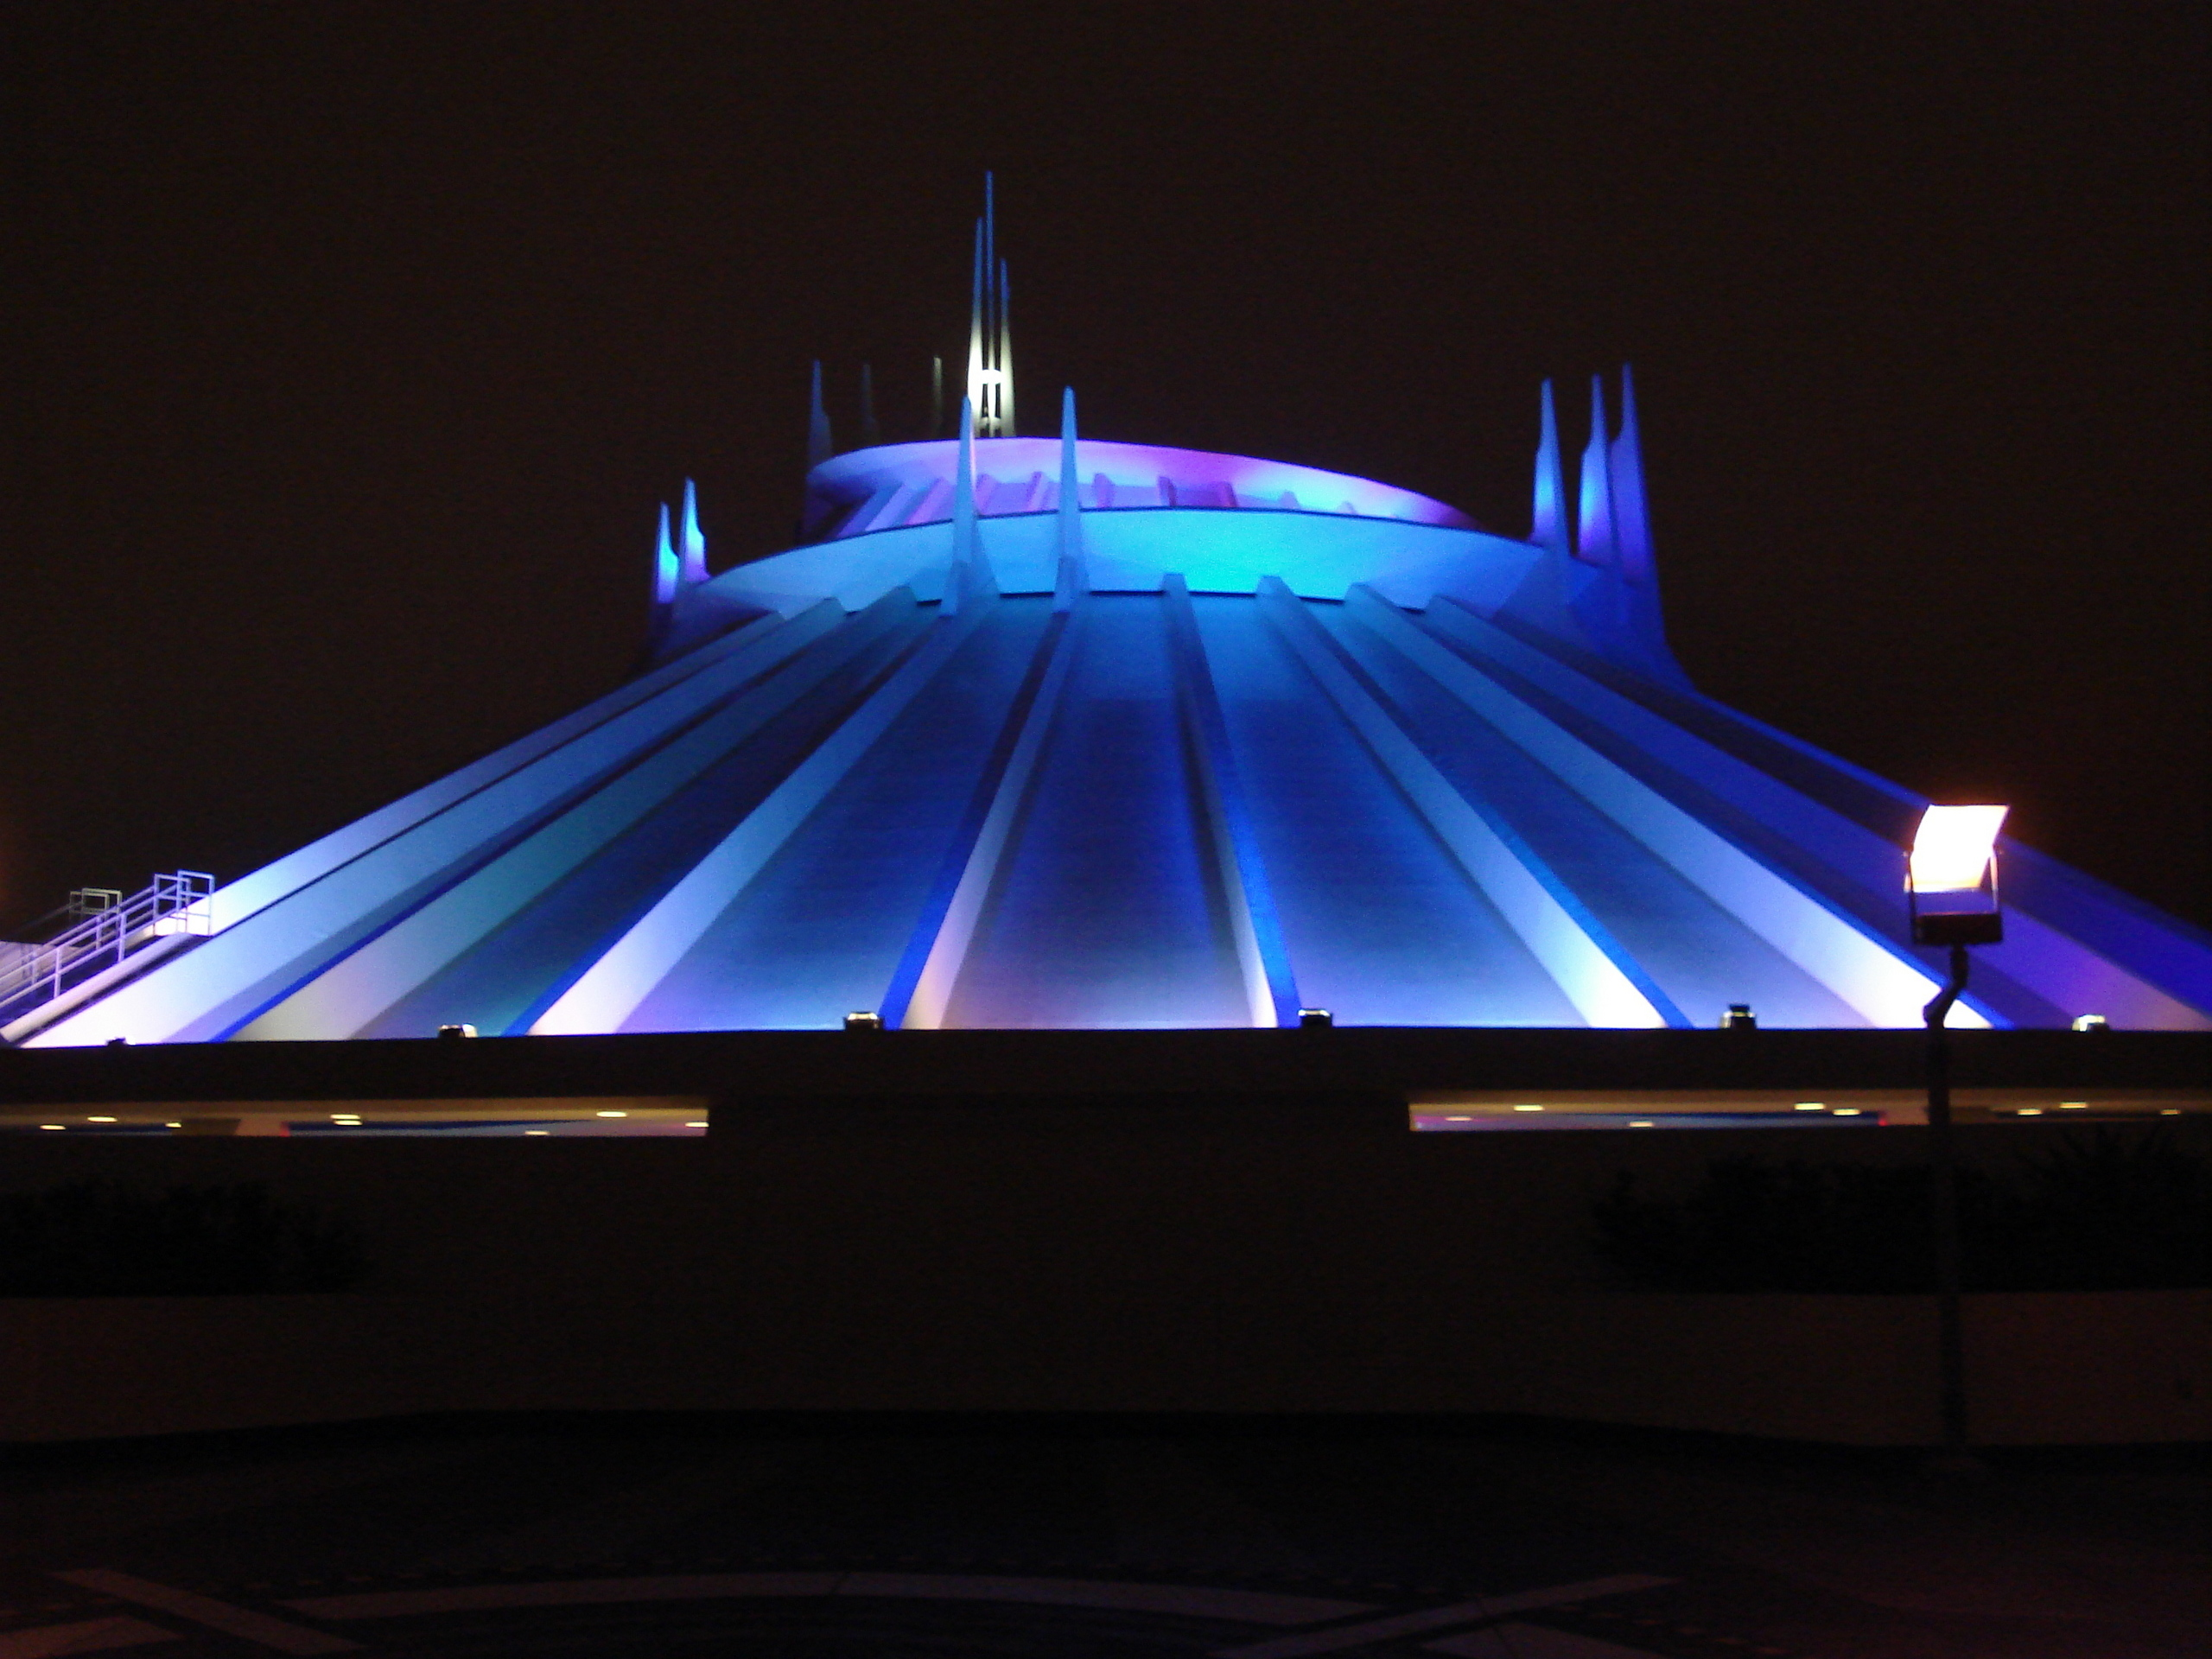 Good Wallpaper Mountain Space - space-mountain-at-night-disneyland-resort-14064346-2560-1920  Snapshot_46845.jpg